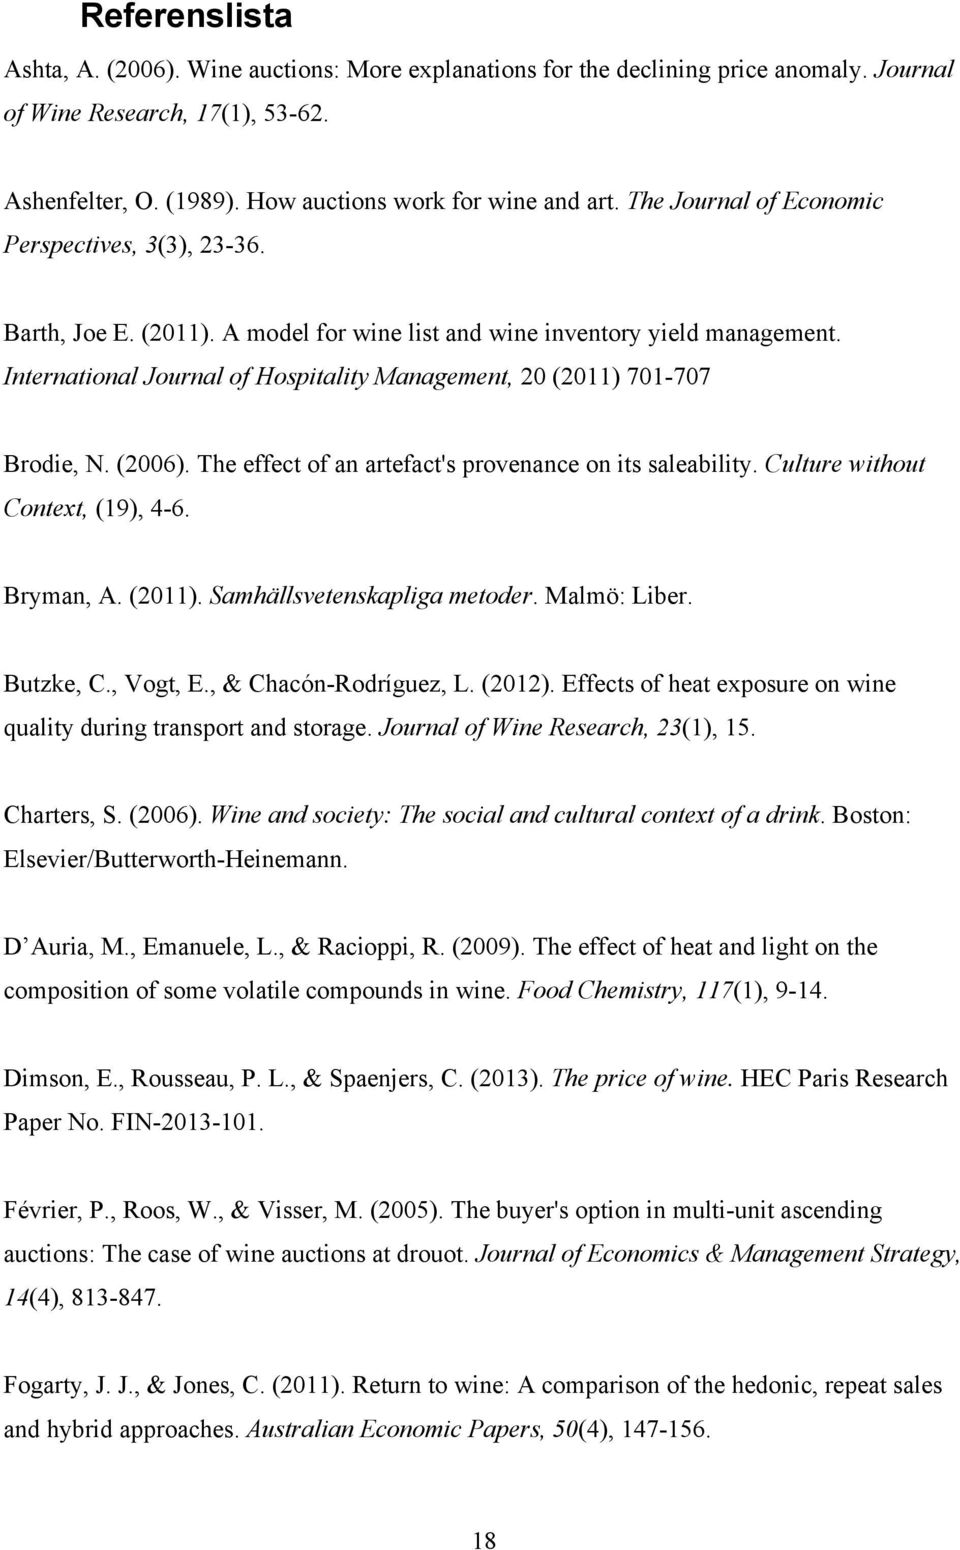 International Journal of Hospitality Management, 20 (2011) 701-707 Brodie, N. (2006). The effect of an artefact's provenance on its saleability. Culture without Context, (19), 4-6. Bryman, A. (2011). Samhällsvetenskapliga metoder.